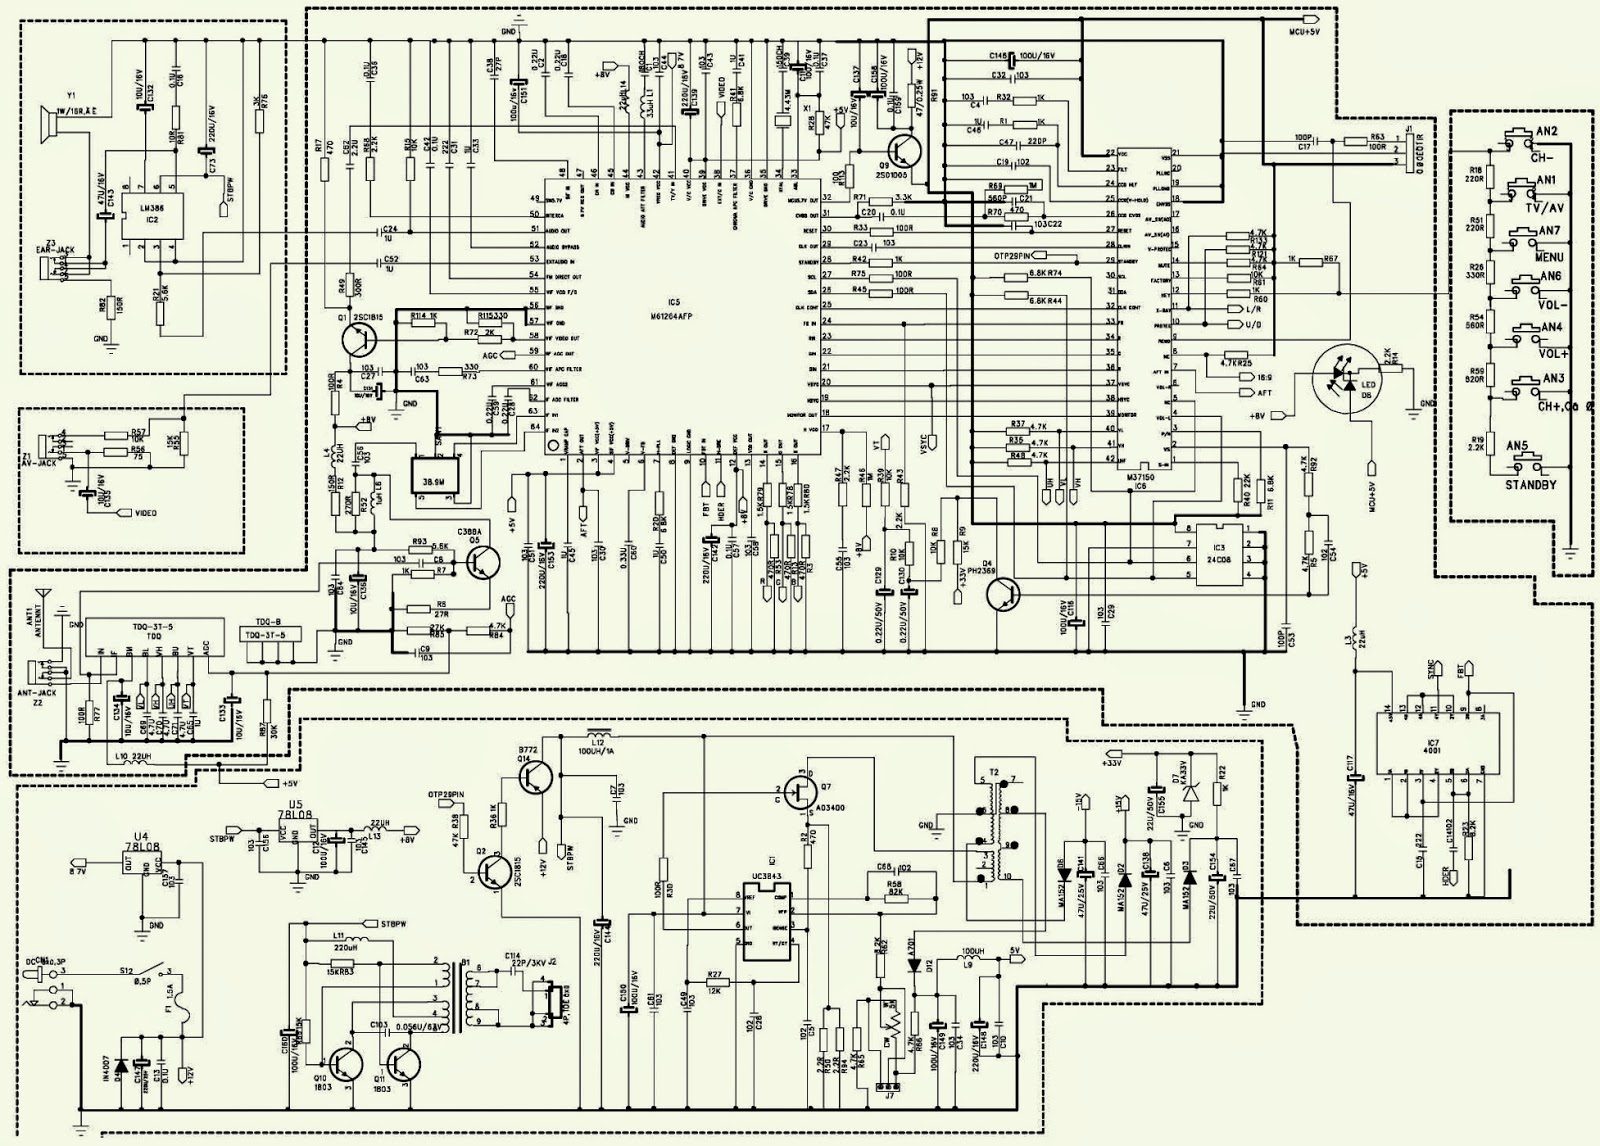 hight resolution of hyundai tv 800 7 inch tft lcd tv schematic circuit diagram lcd tv schematic diagram 32 inch insignia tv schematic circuit diagram